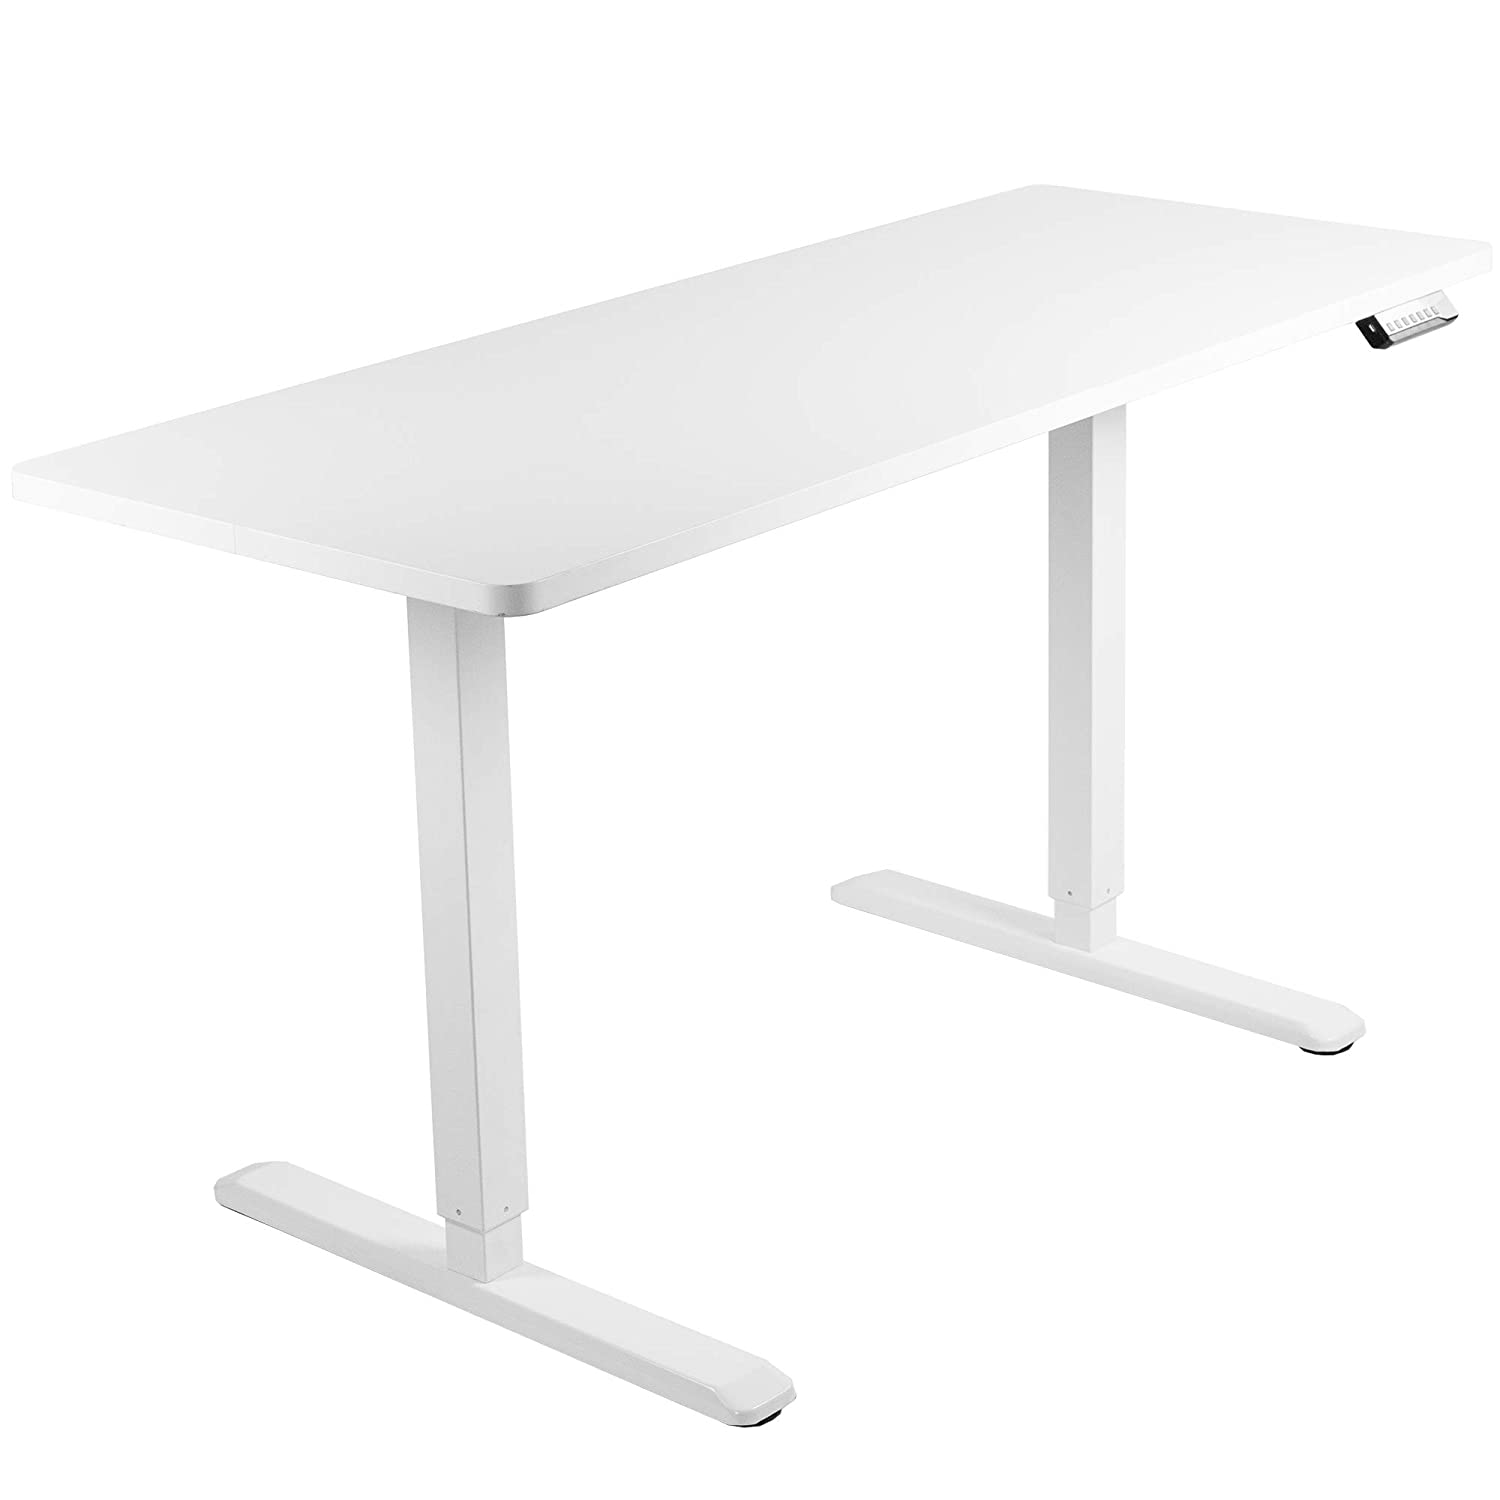 VIVO Electric 60 x 24 inch Stand Up Desk White Table Top, White Frame, Height Adjustable Standing Workstation with Memory Preset Controller DESK-KIT-1W6W